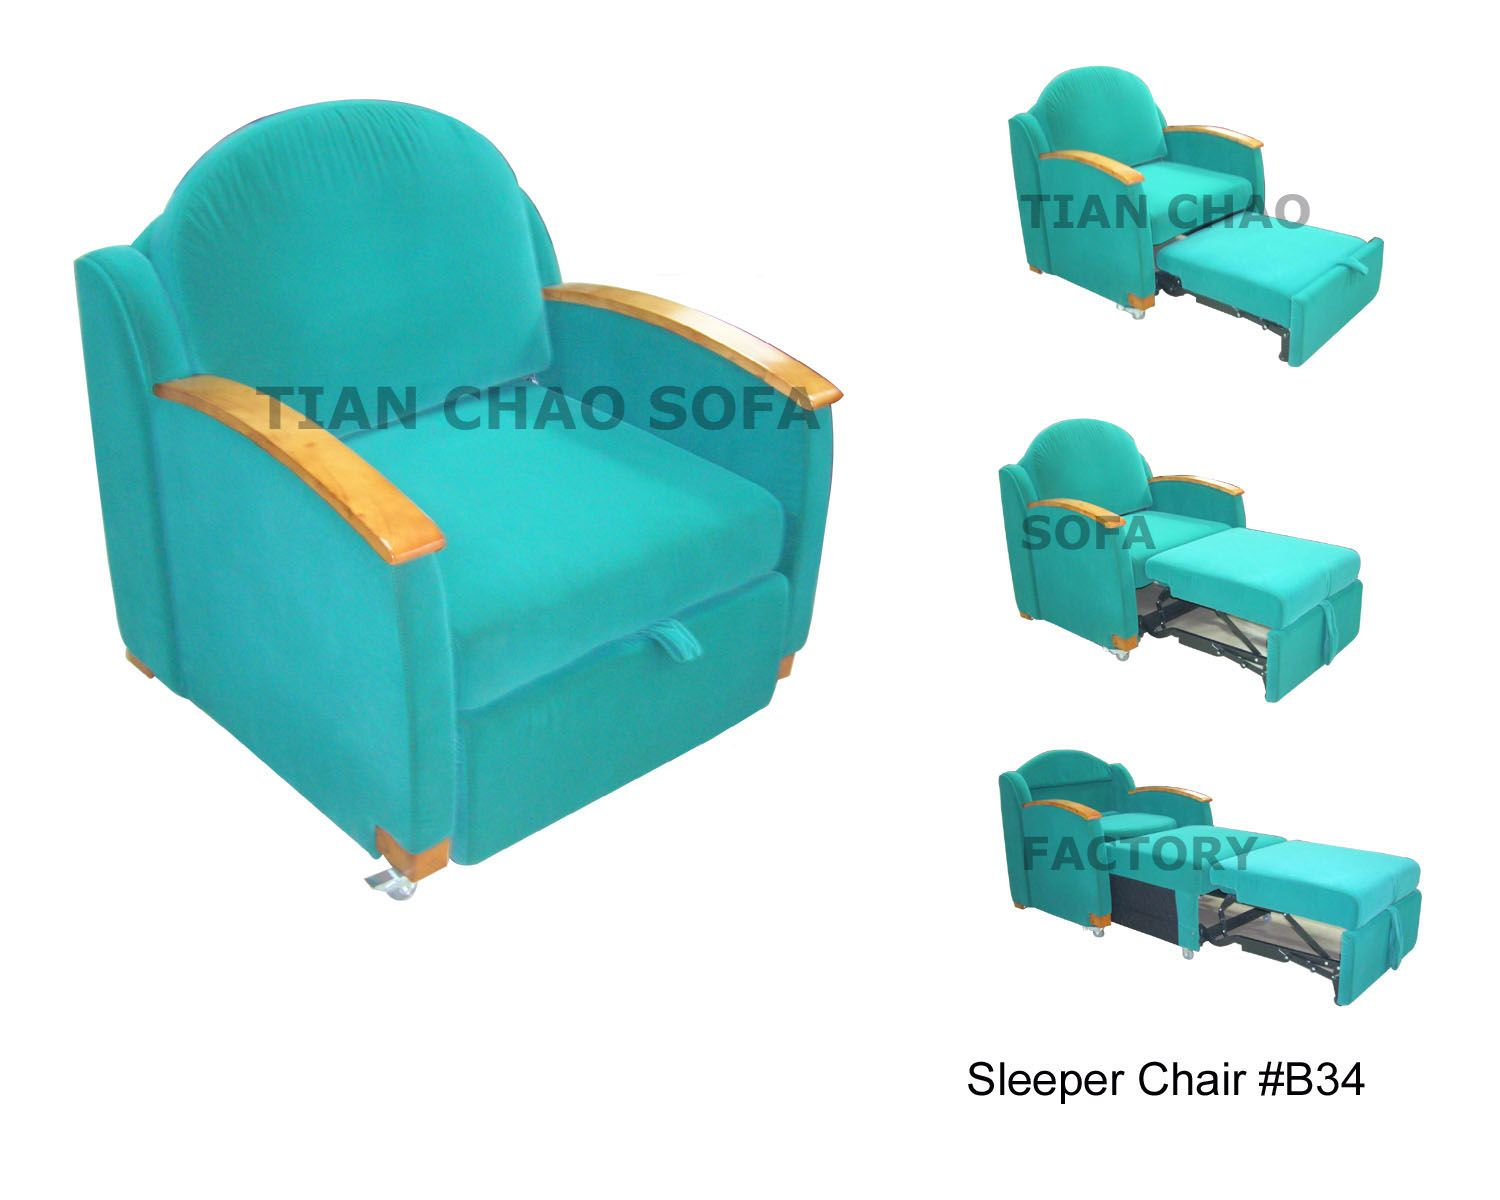 sleeper chair ingenious diy ideas for rental Pinterest Sofa